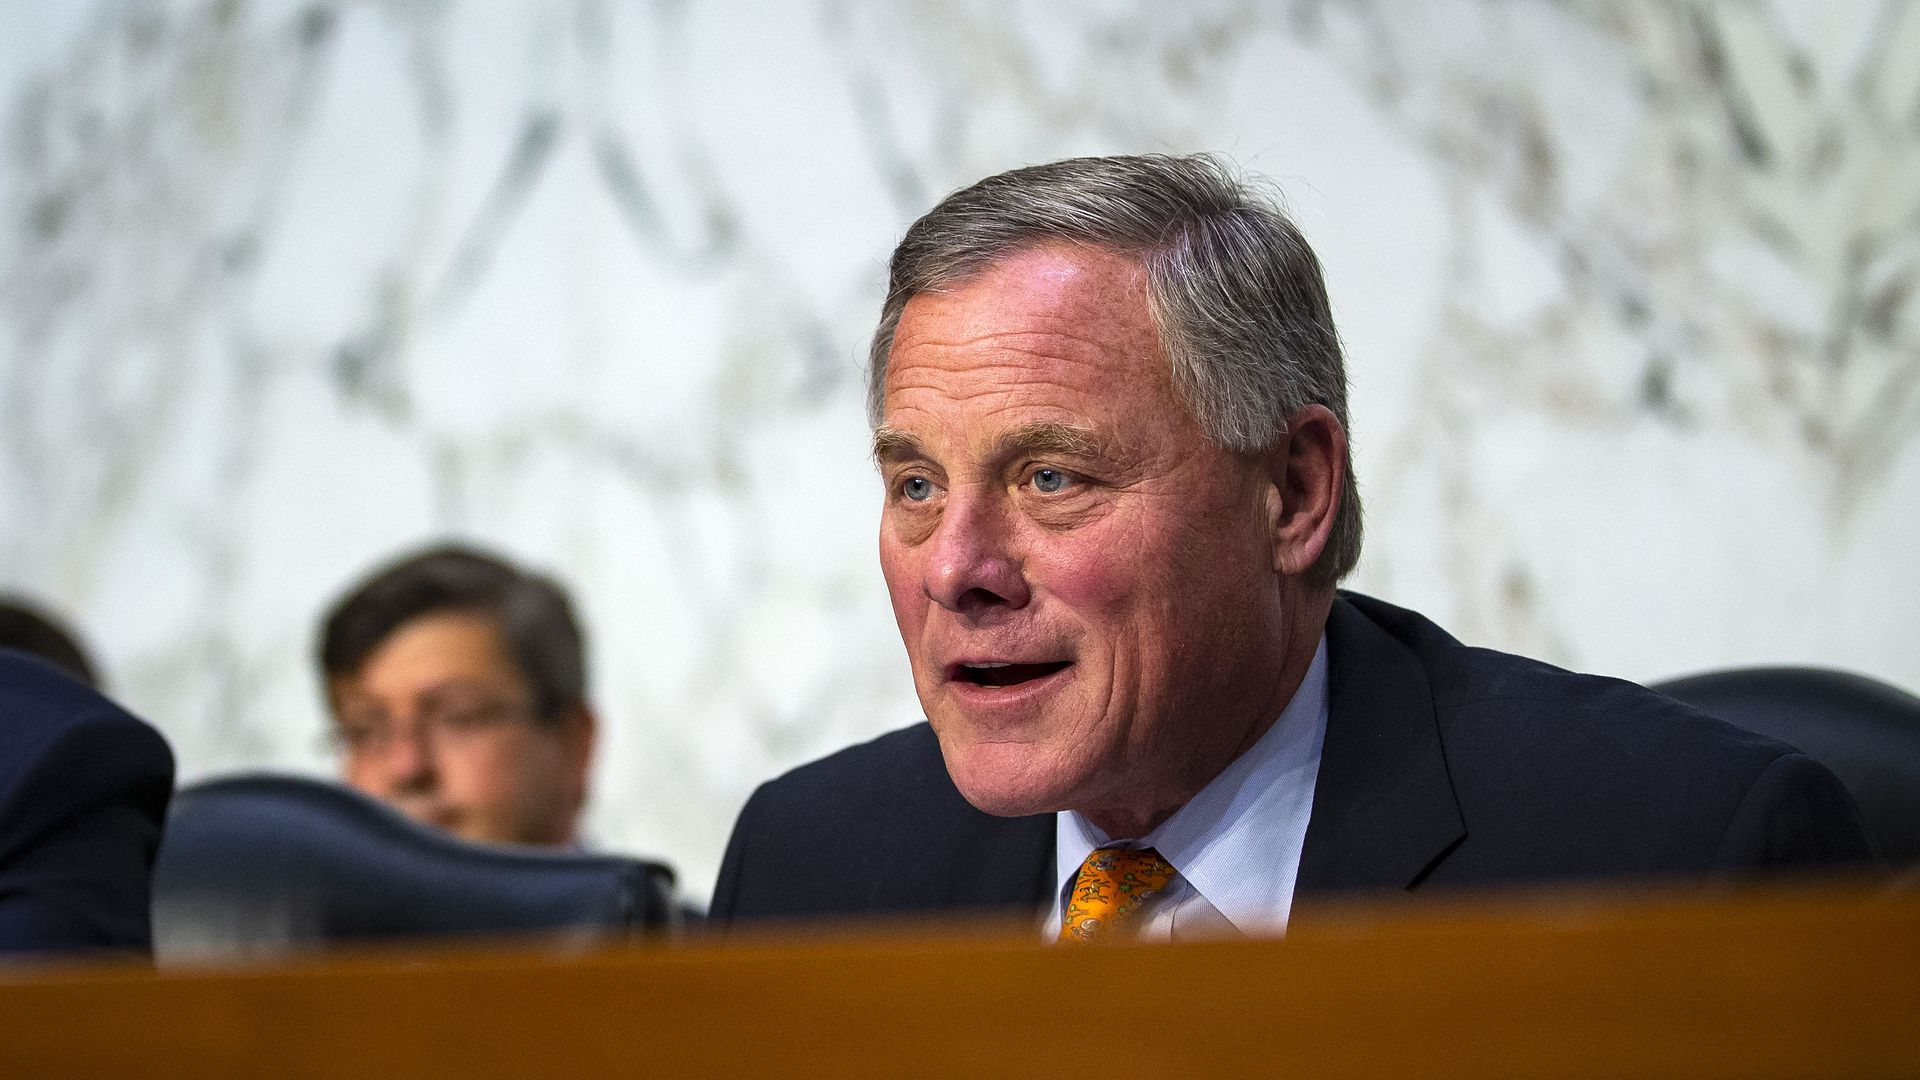 Senate Intel chair Richard Burr briefed White House on targets in Russia probe